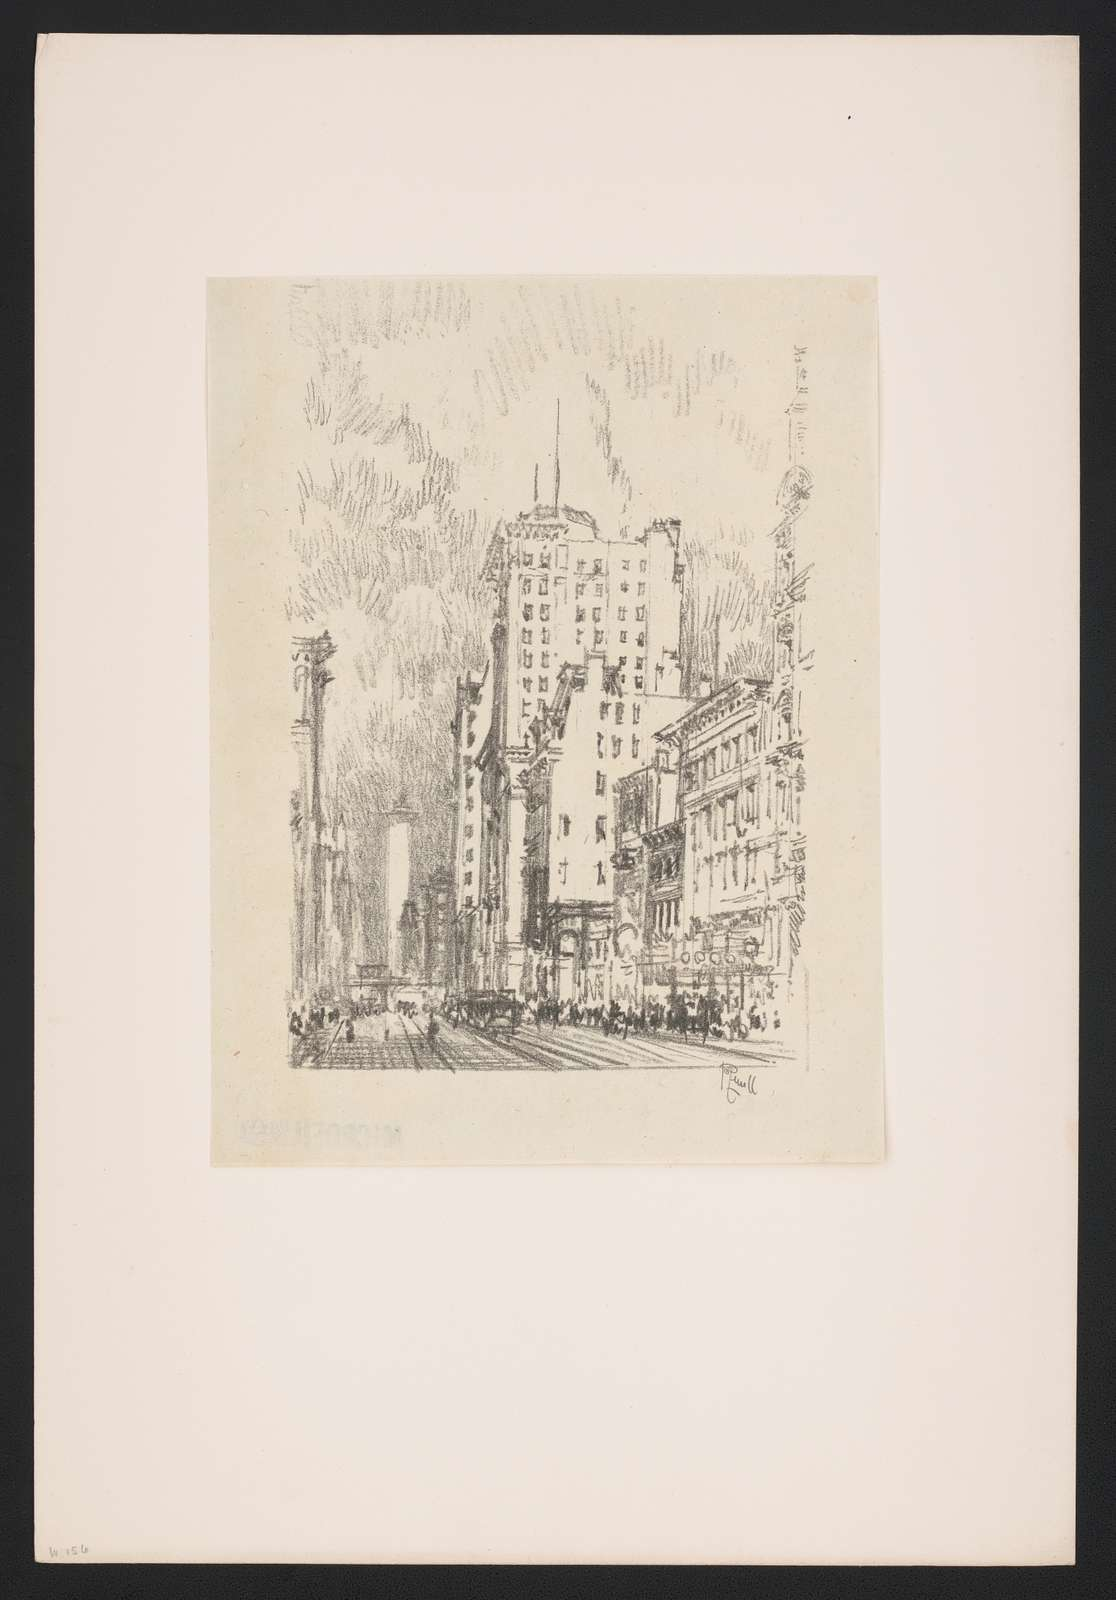 Lithographs of New York in 1904 drawn by Joseph Pennell. No. 11, Broadway above 23rd Street J. Pennell